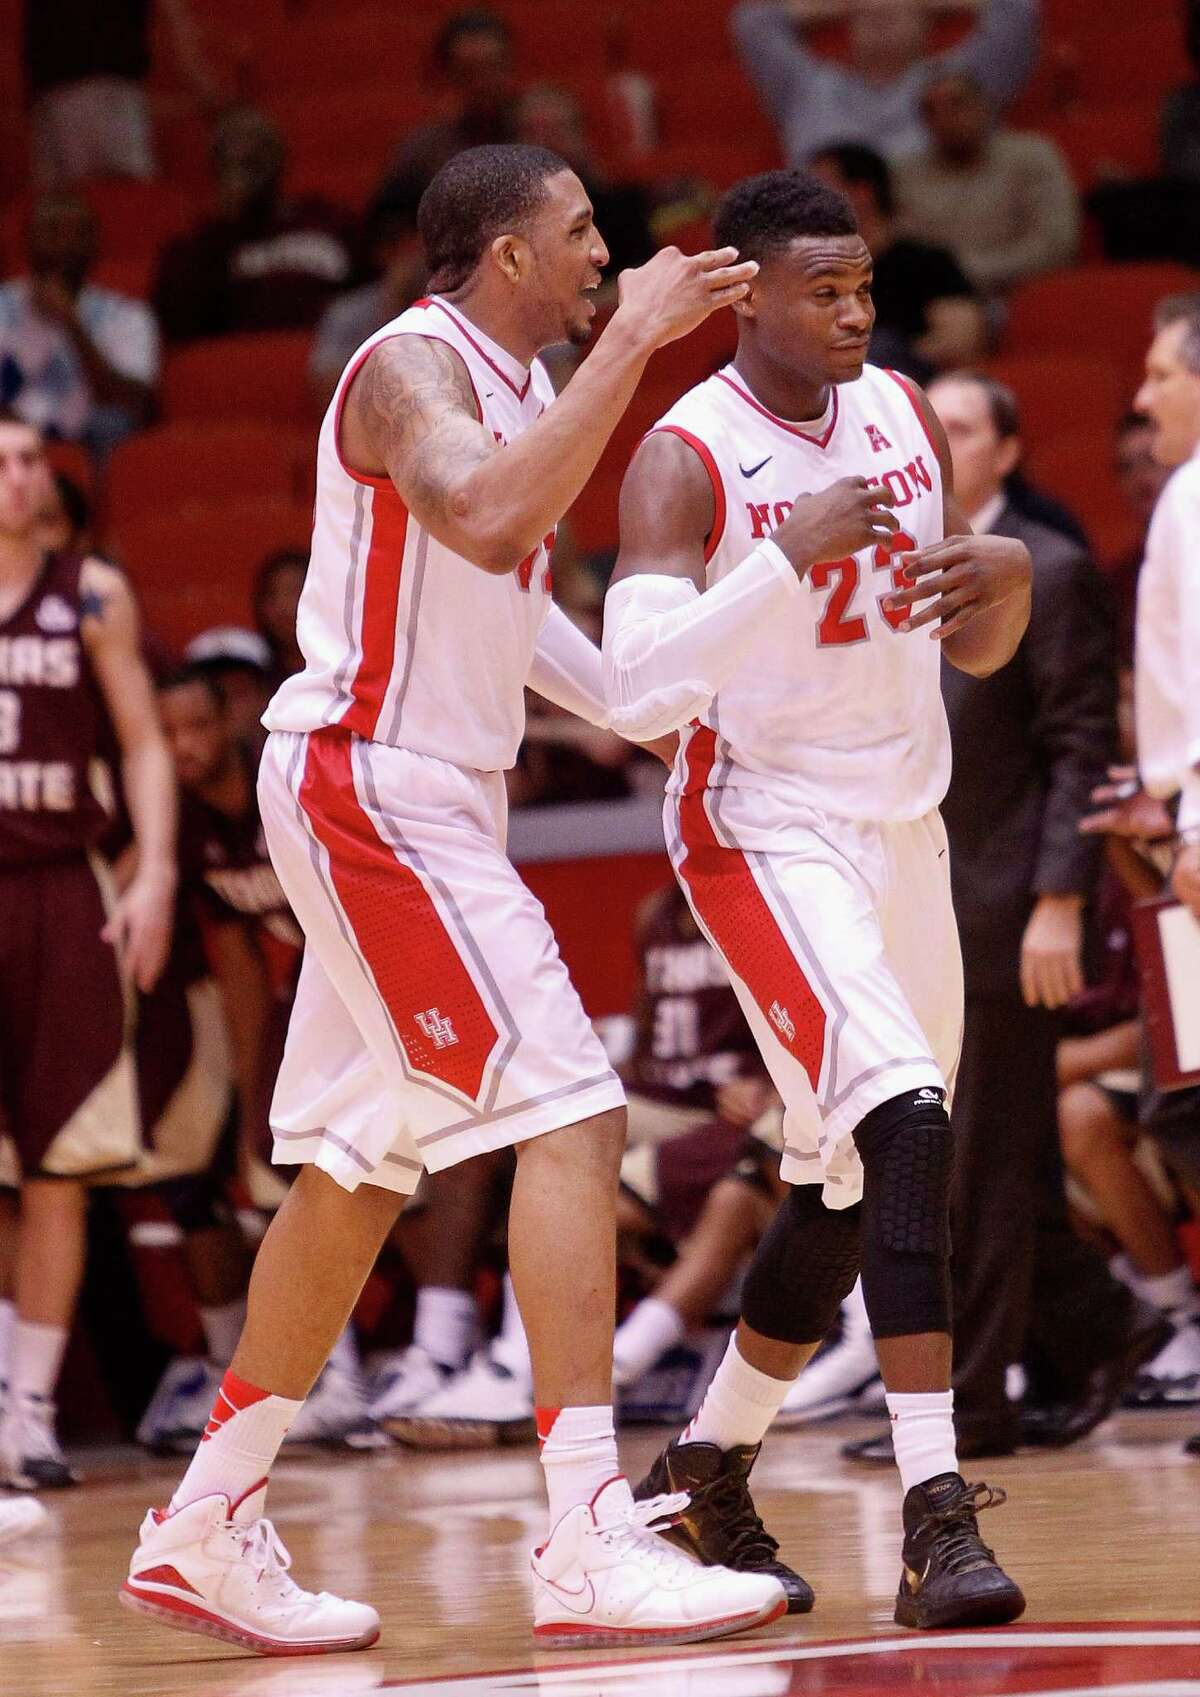 Houston Cougars guard Danuel House is congratulated by TaShawn Thomas after hitting a three point shot to give the Houston Cougars a cushion late in the second half during an NCAA mens basketball game between the Texas State Bobcats and the University of Houston Cougars at Hofheinz Pavilion, Friday, Nov. 8, 2013. (Bob Levey/Special to the Chronicle)